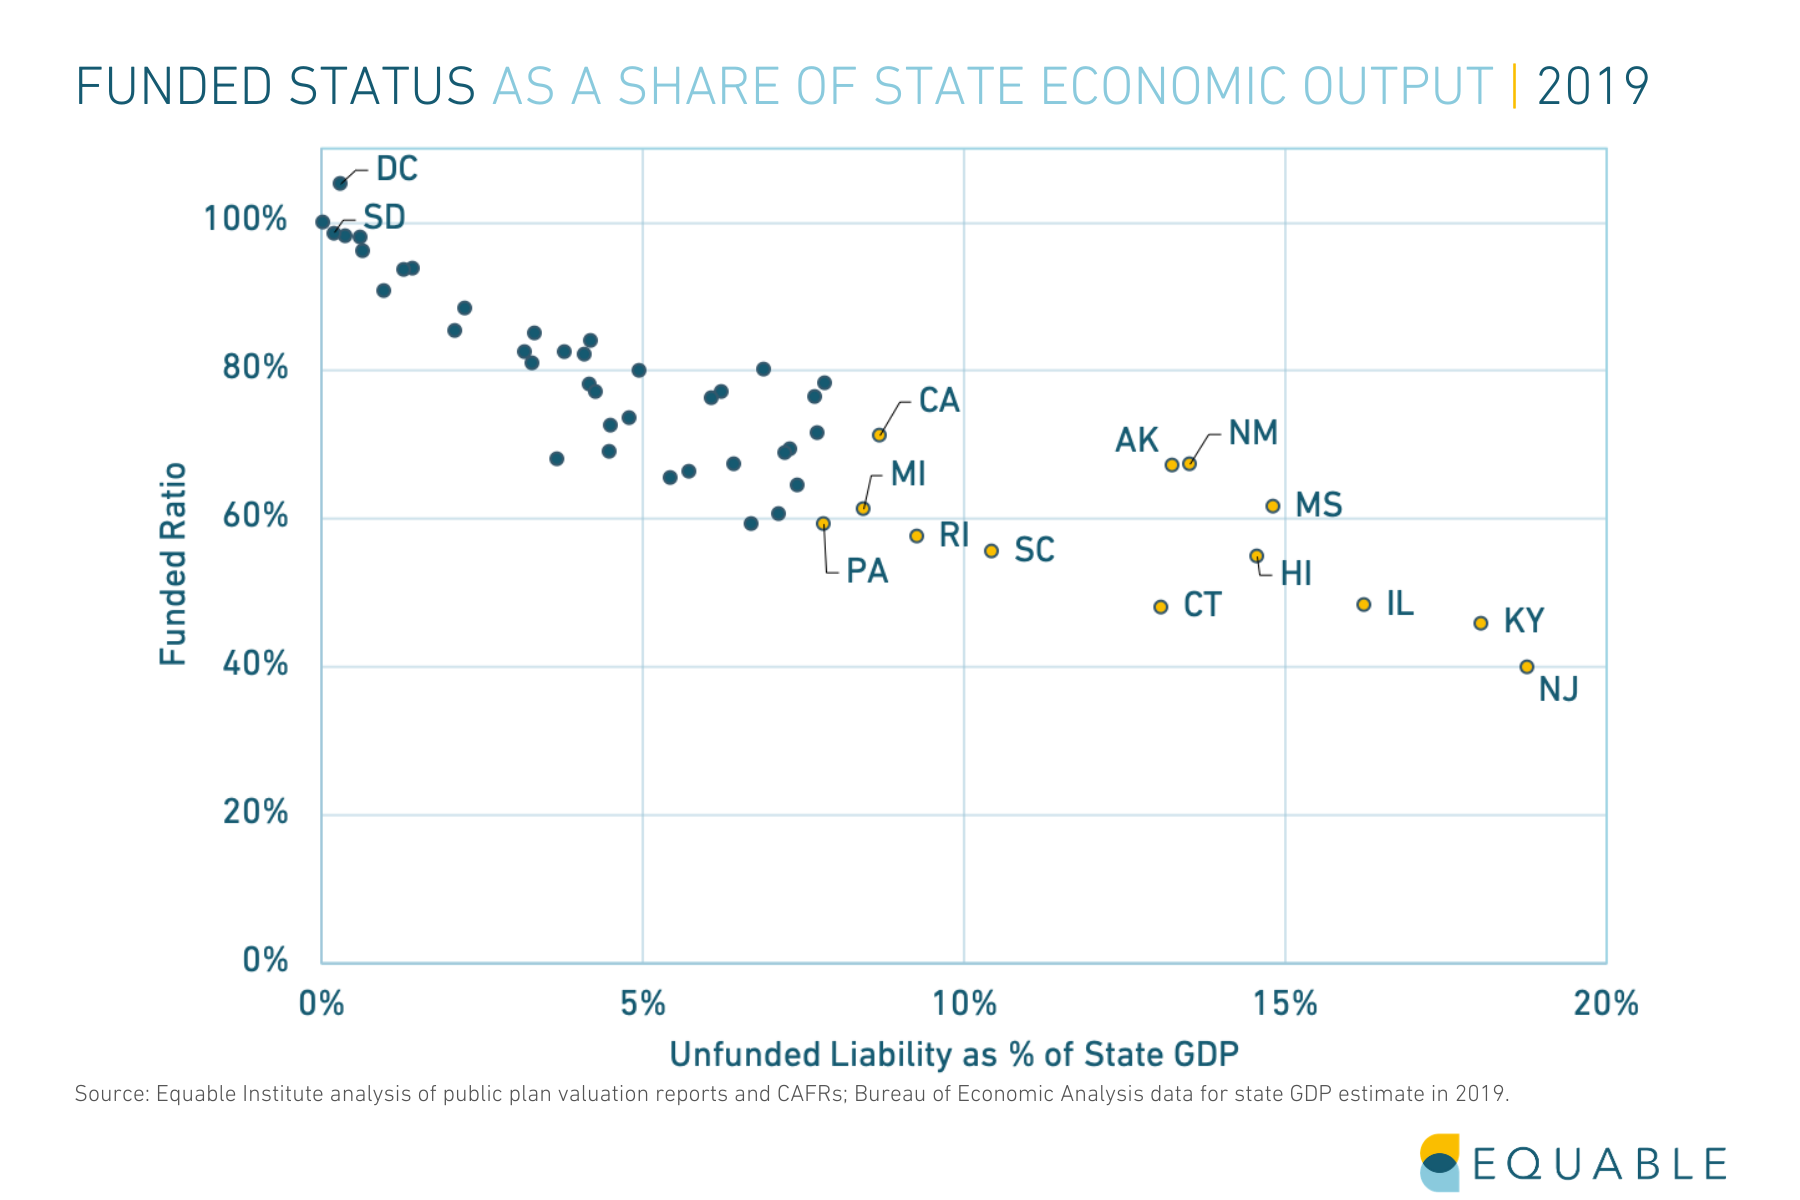 Public Pension Funded Status as a Share of State Economic Output (GDP) 2019